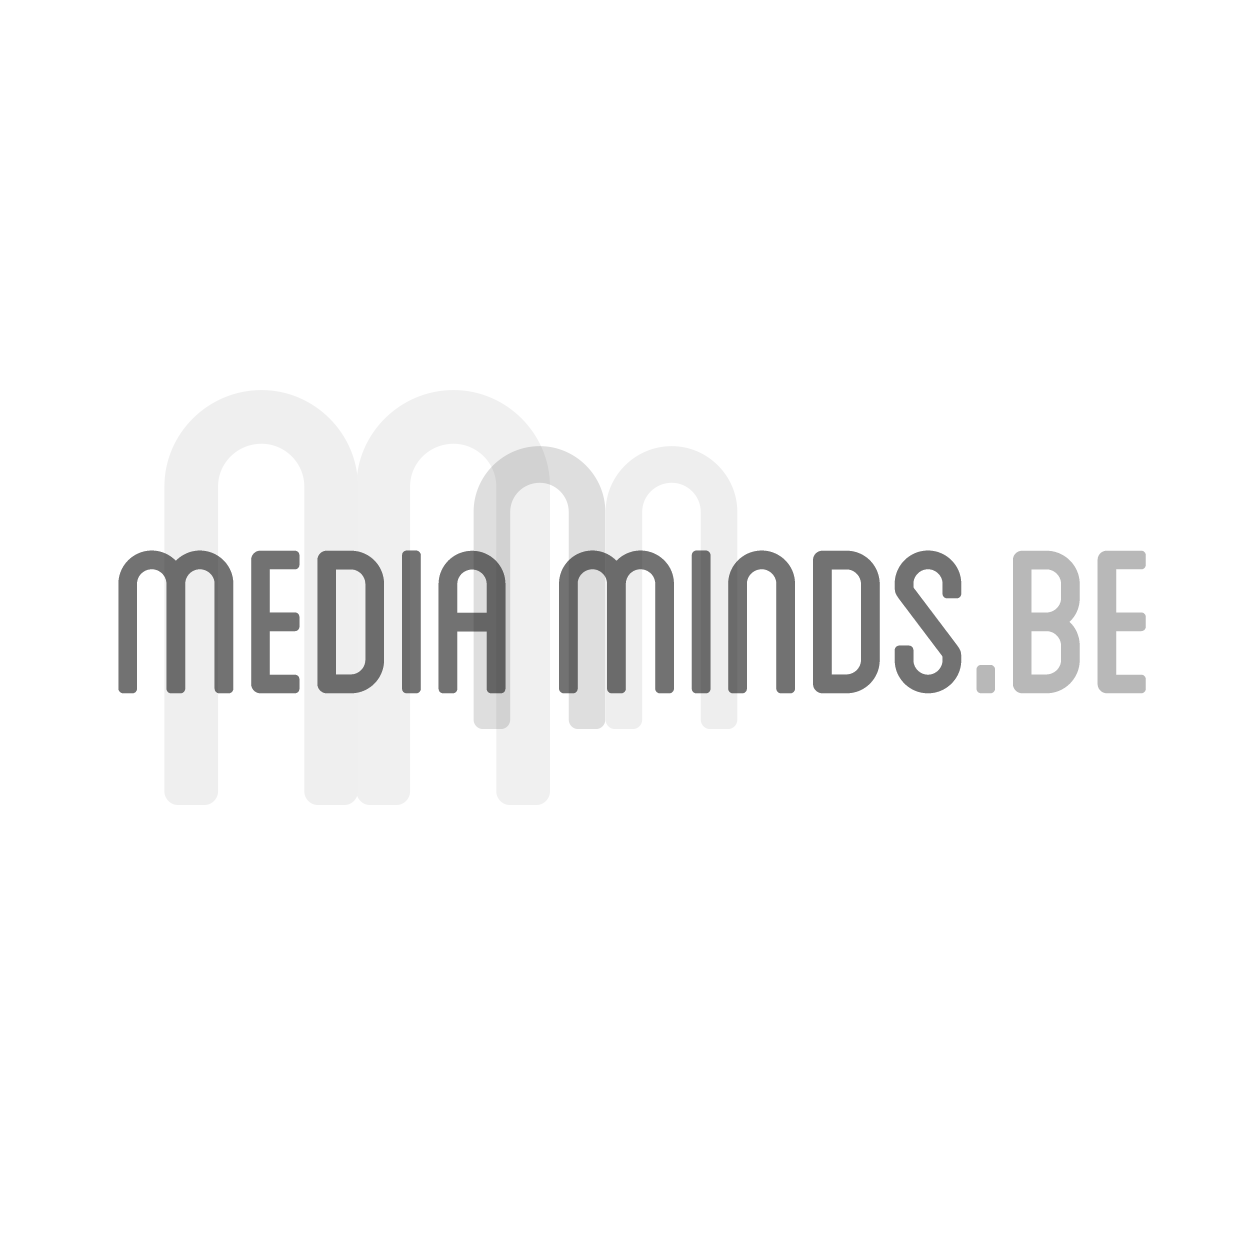 Logo Media Minds